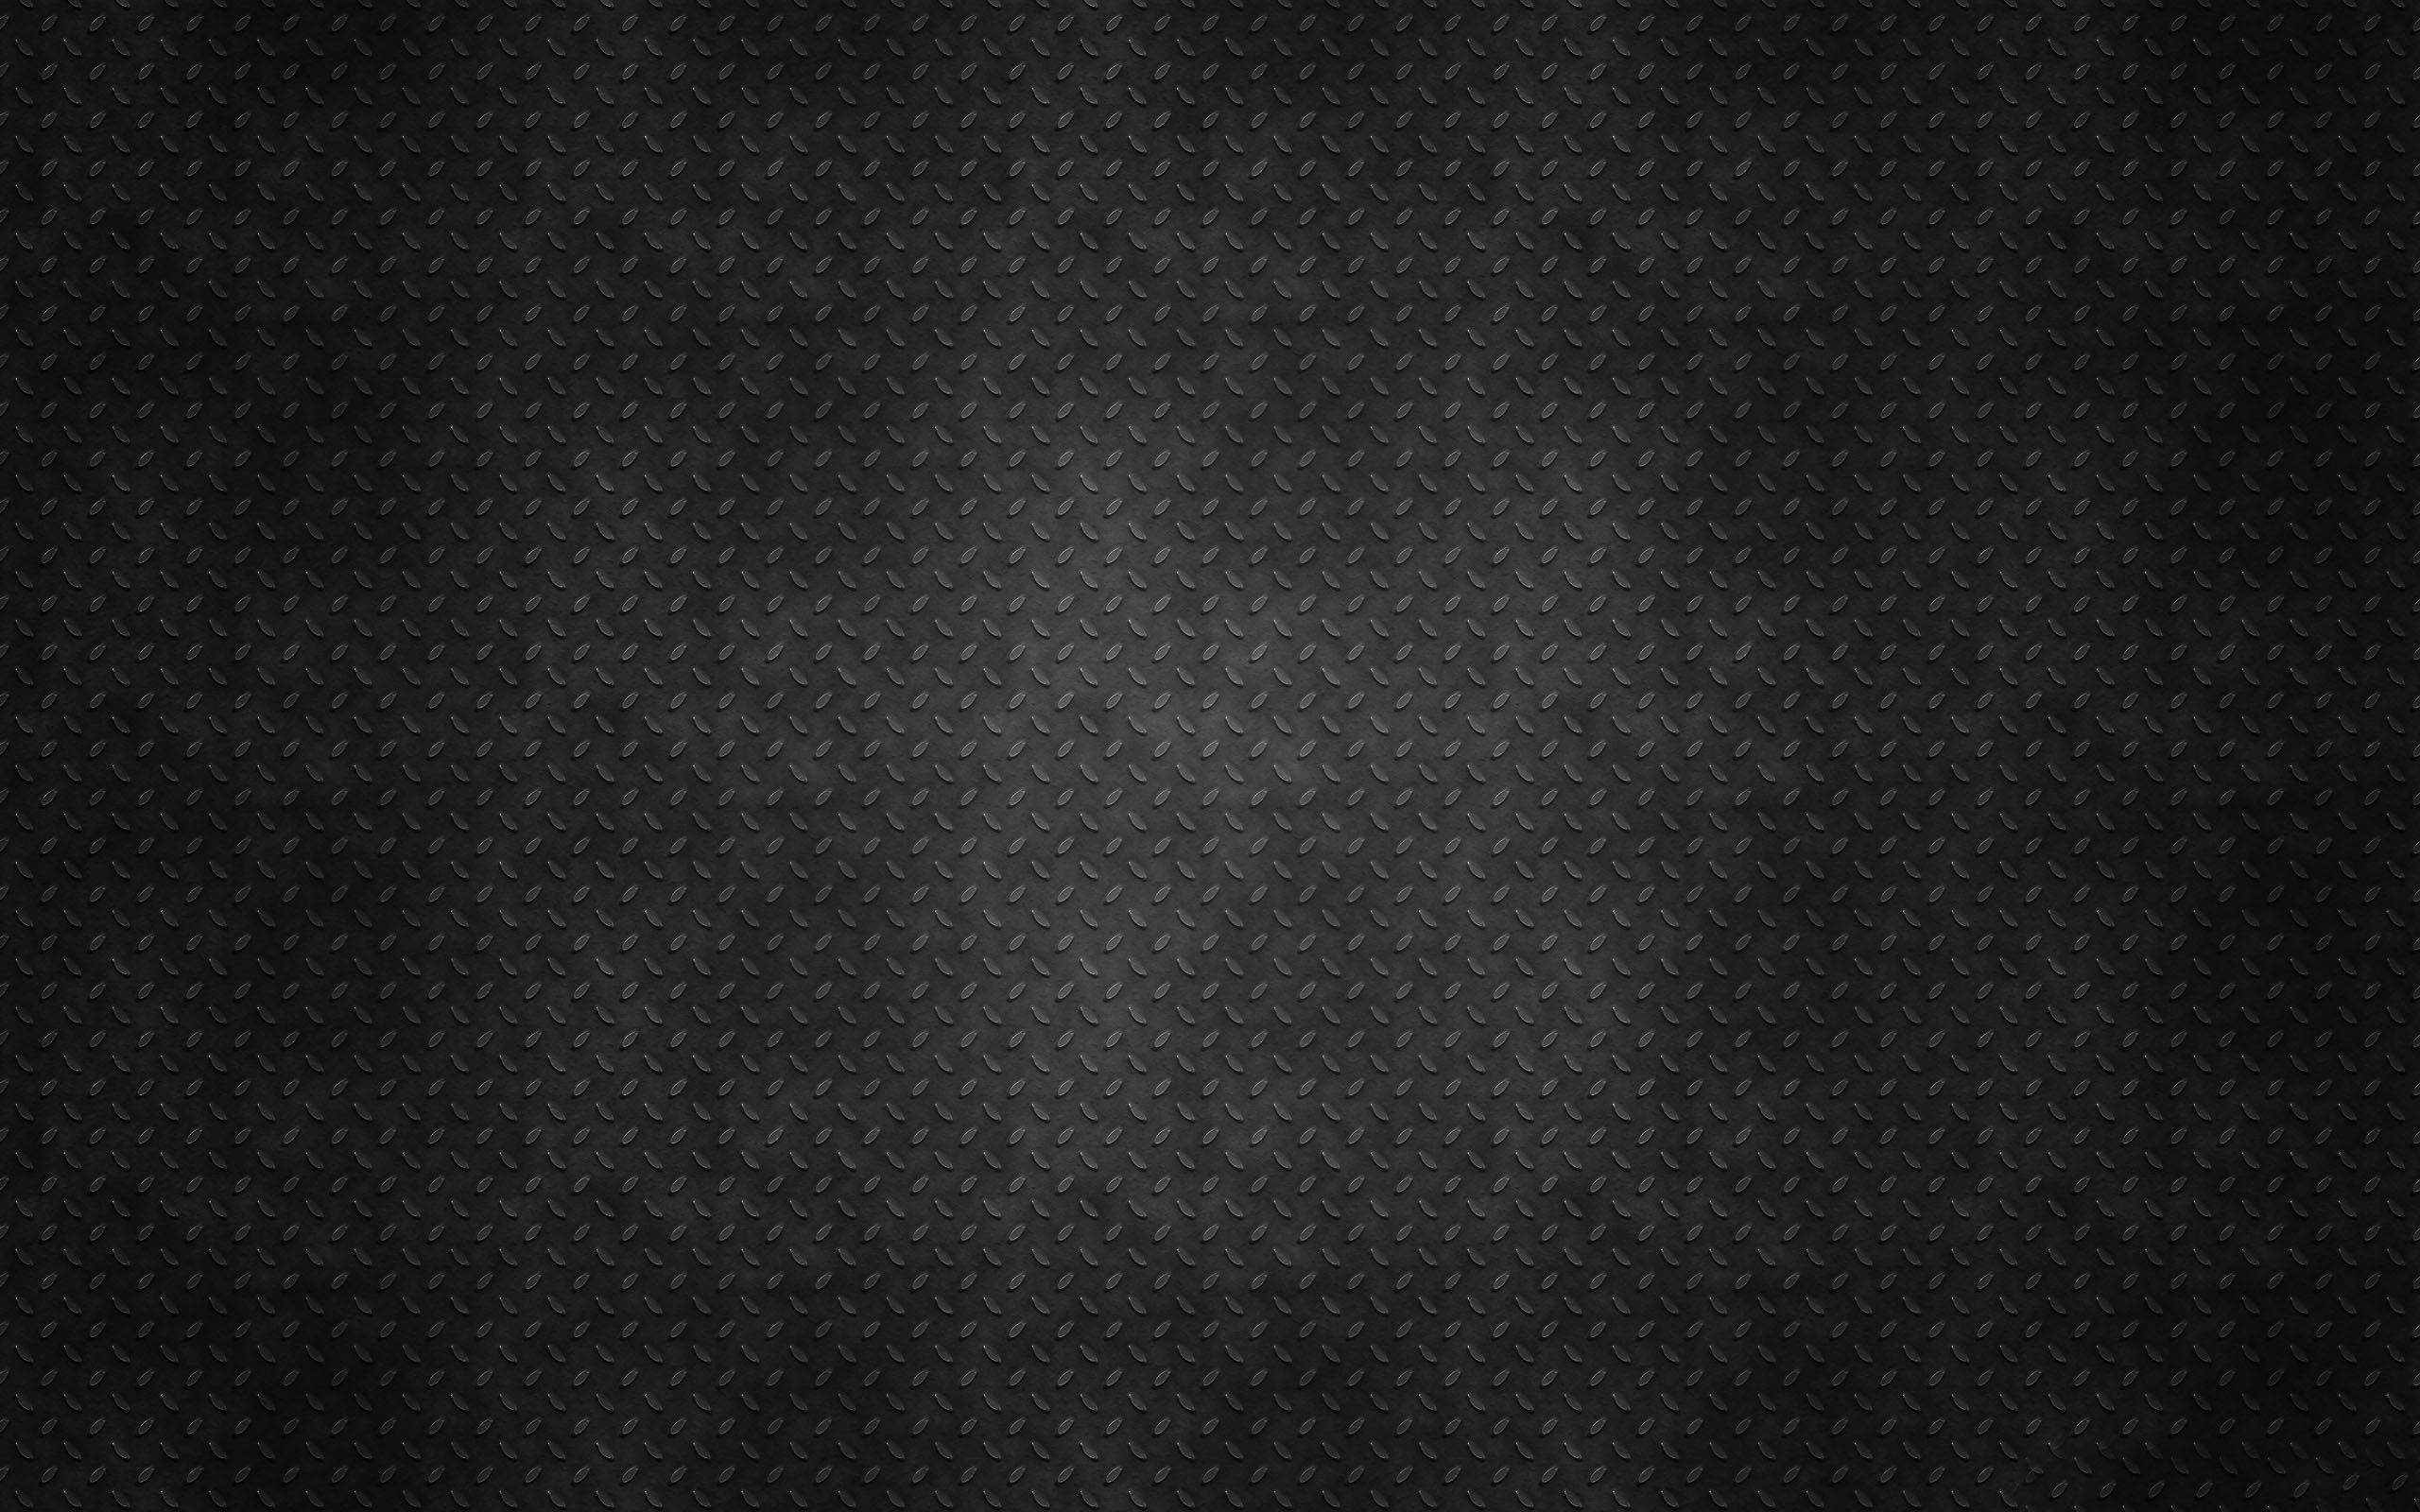 Black Hd Background Background Wallpapers Abstract Photo